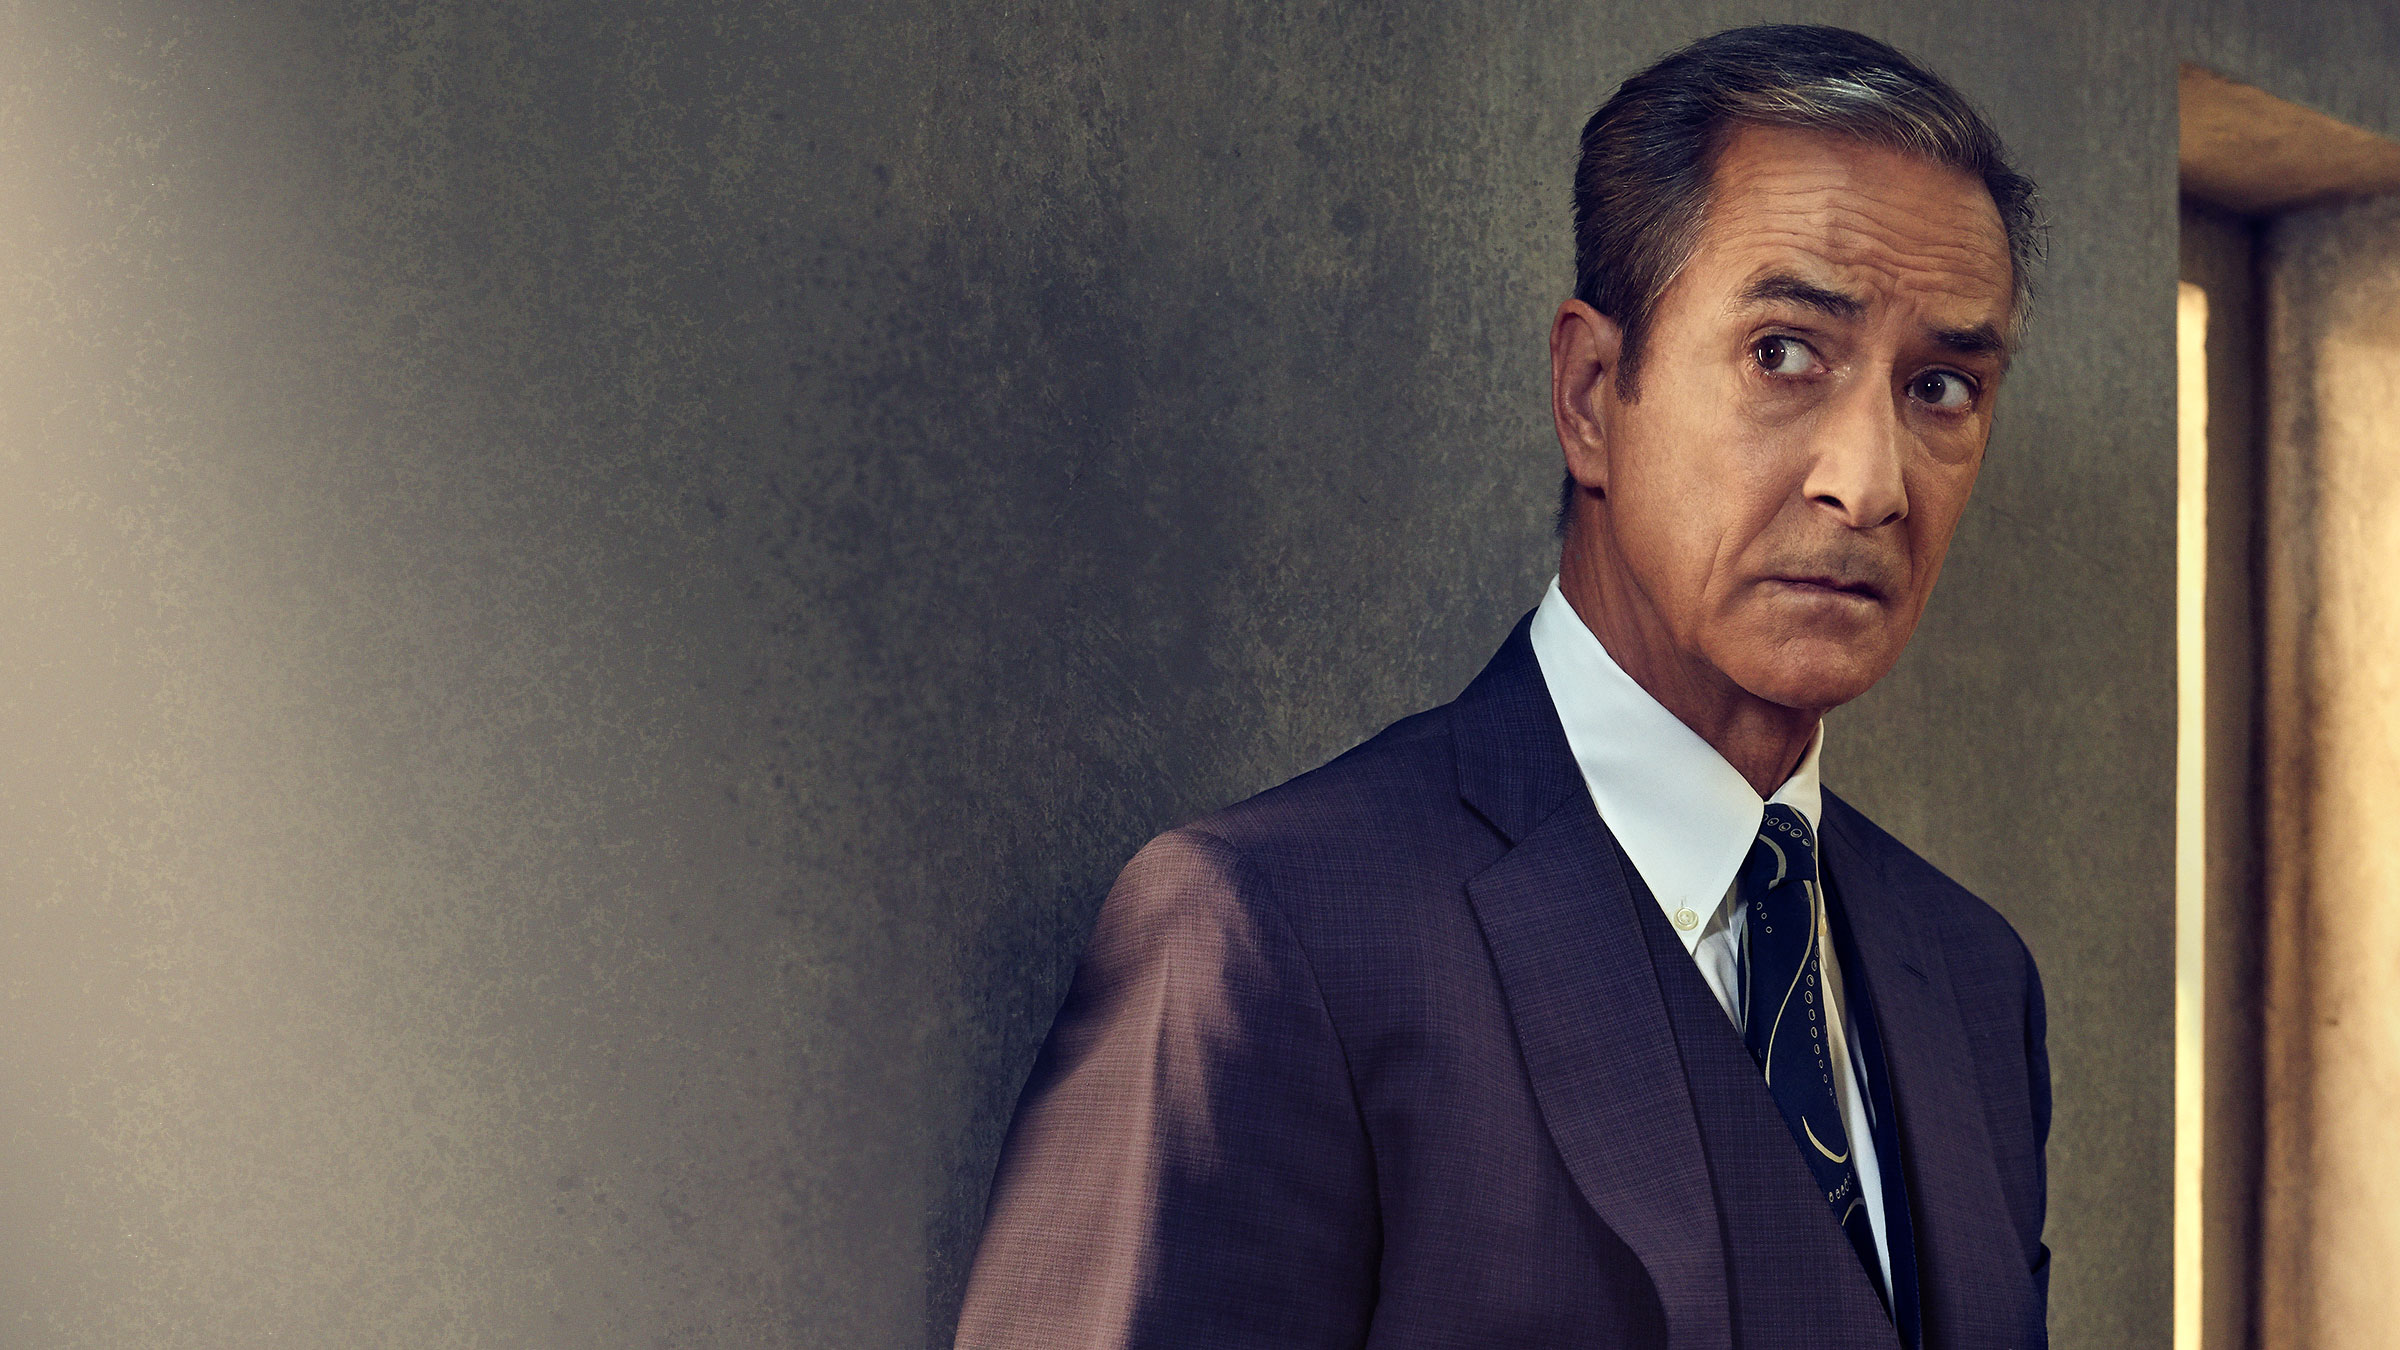 David Strathairn as Henry Fisher